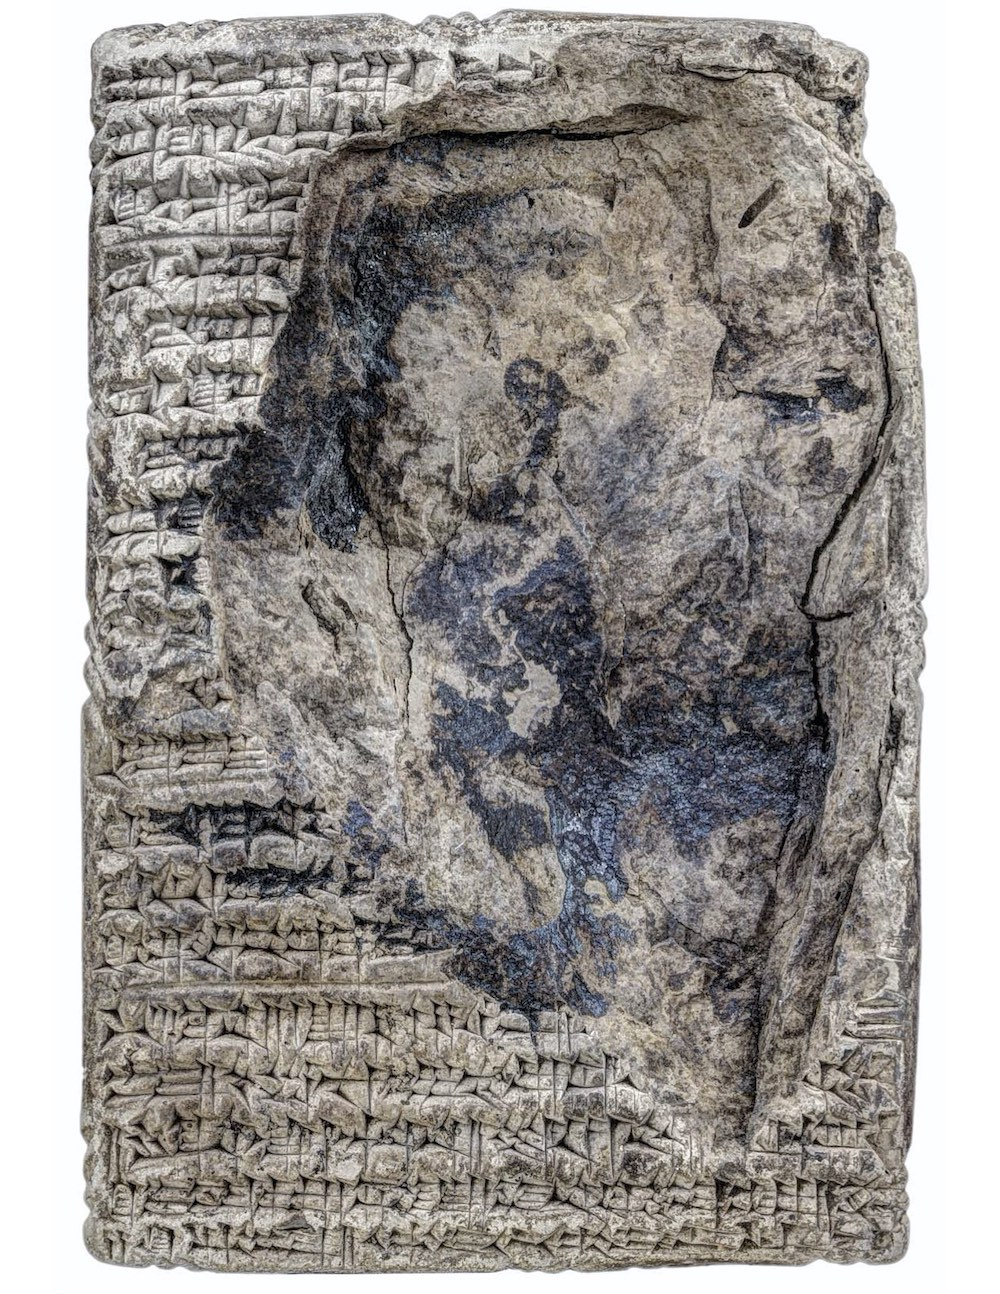 Fragmentary obverse of a house sale contract. Courtesy of the Yale Babylonian Collection.